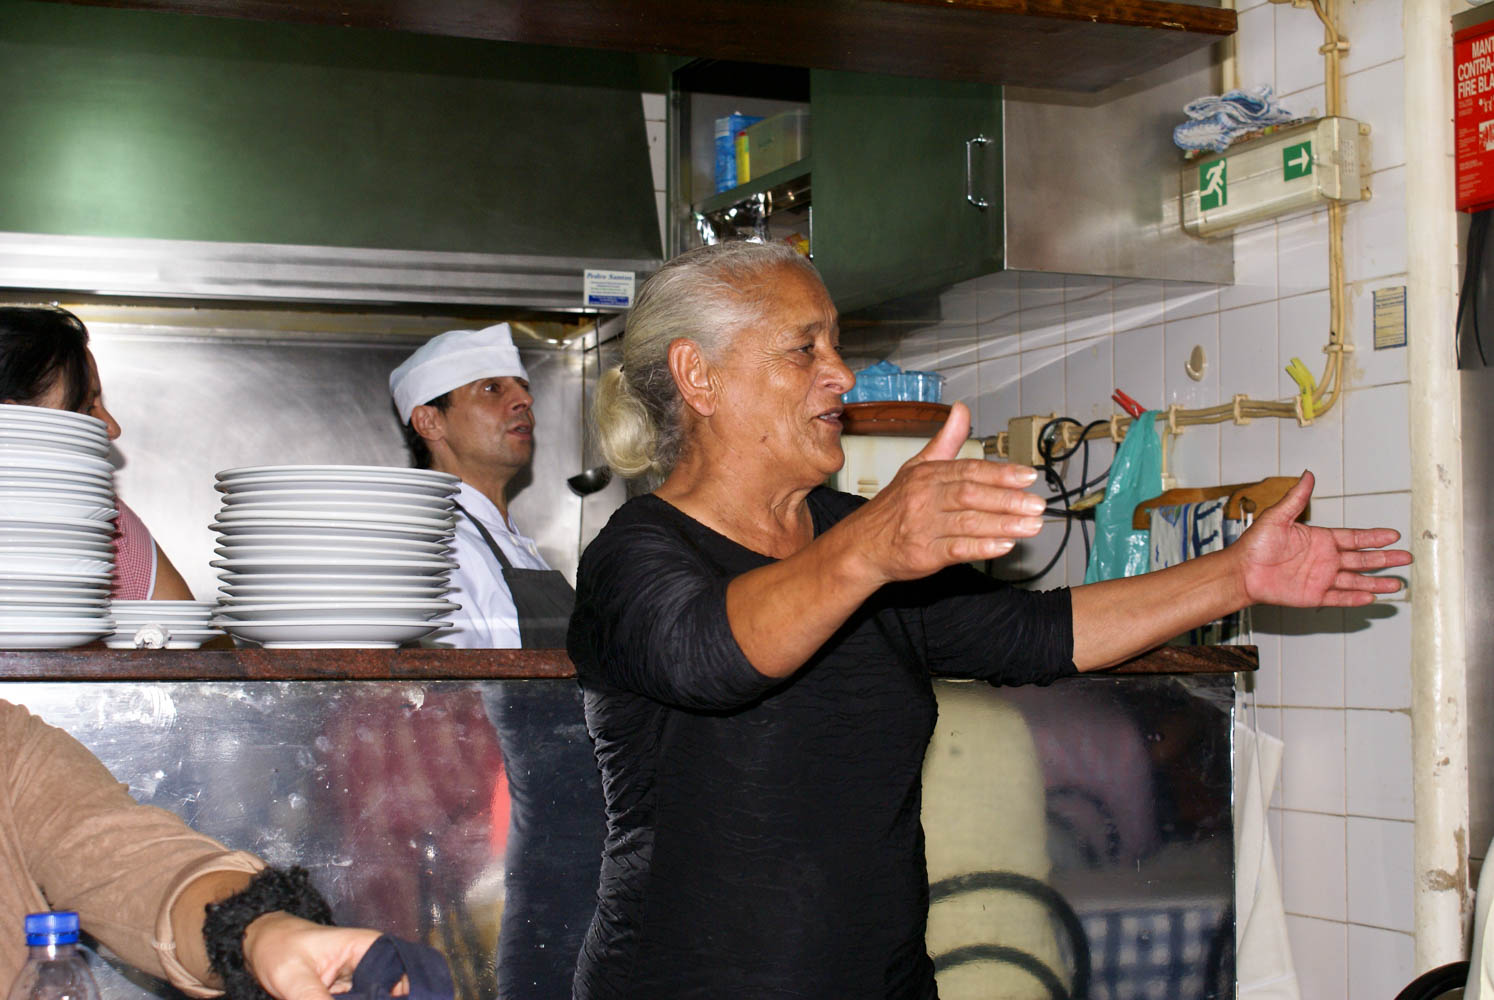 The owner of the small restaurant singing along to the fado singer